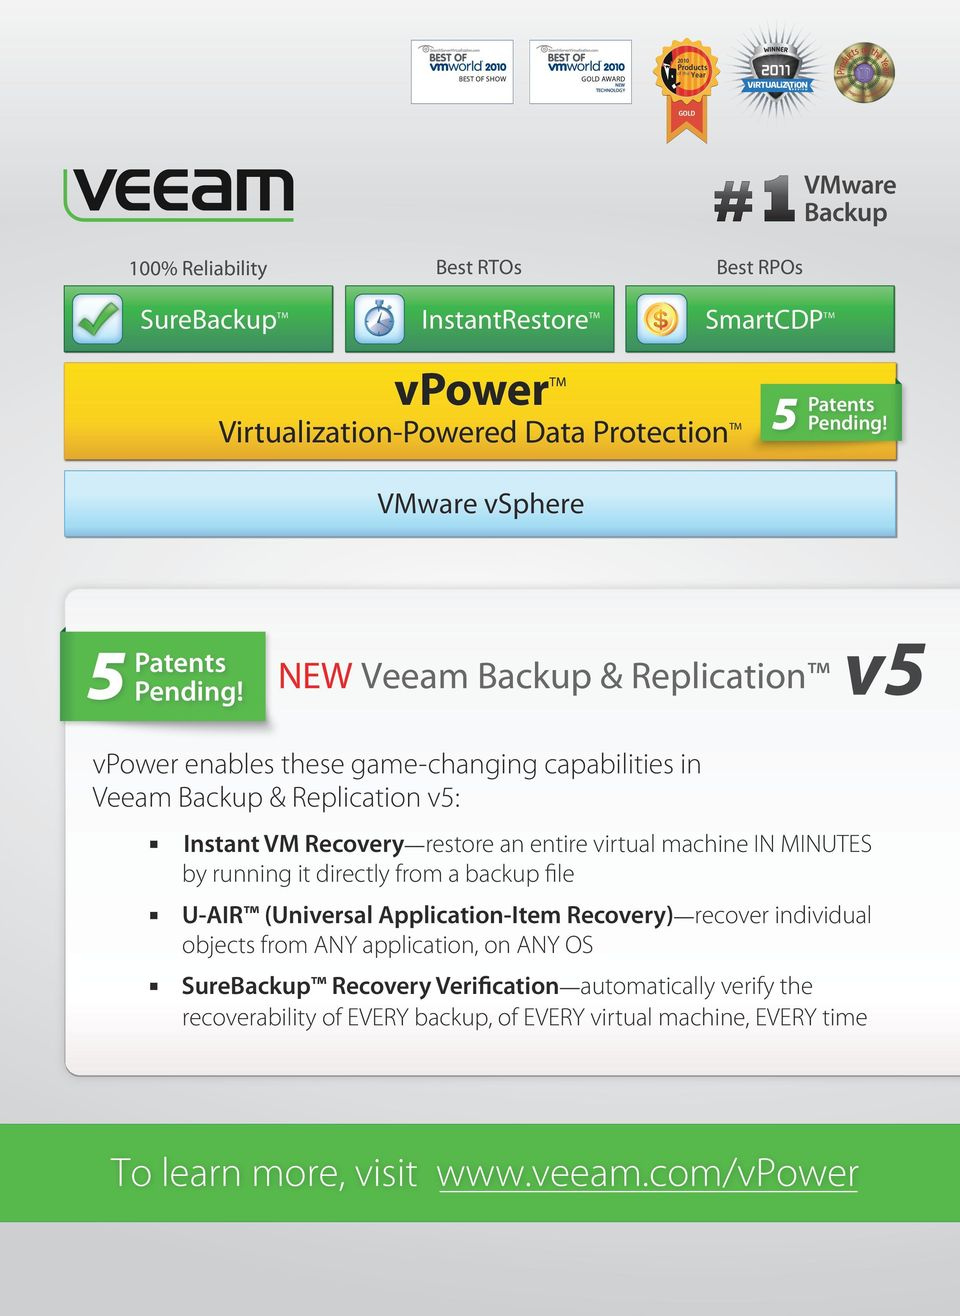 NEW Veeam Backup & Replication vpower enables these game-changing capabilities in Veeam Backup & Replication v5: Instant VM Recovery restore an entire virtual machine IN